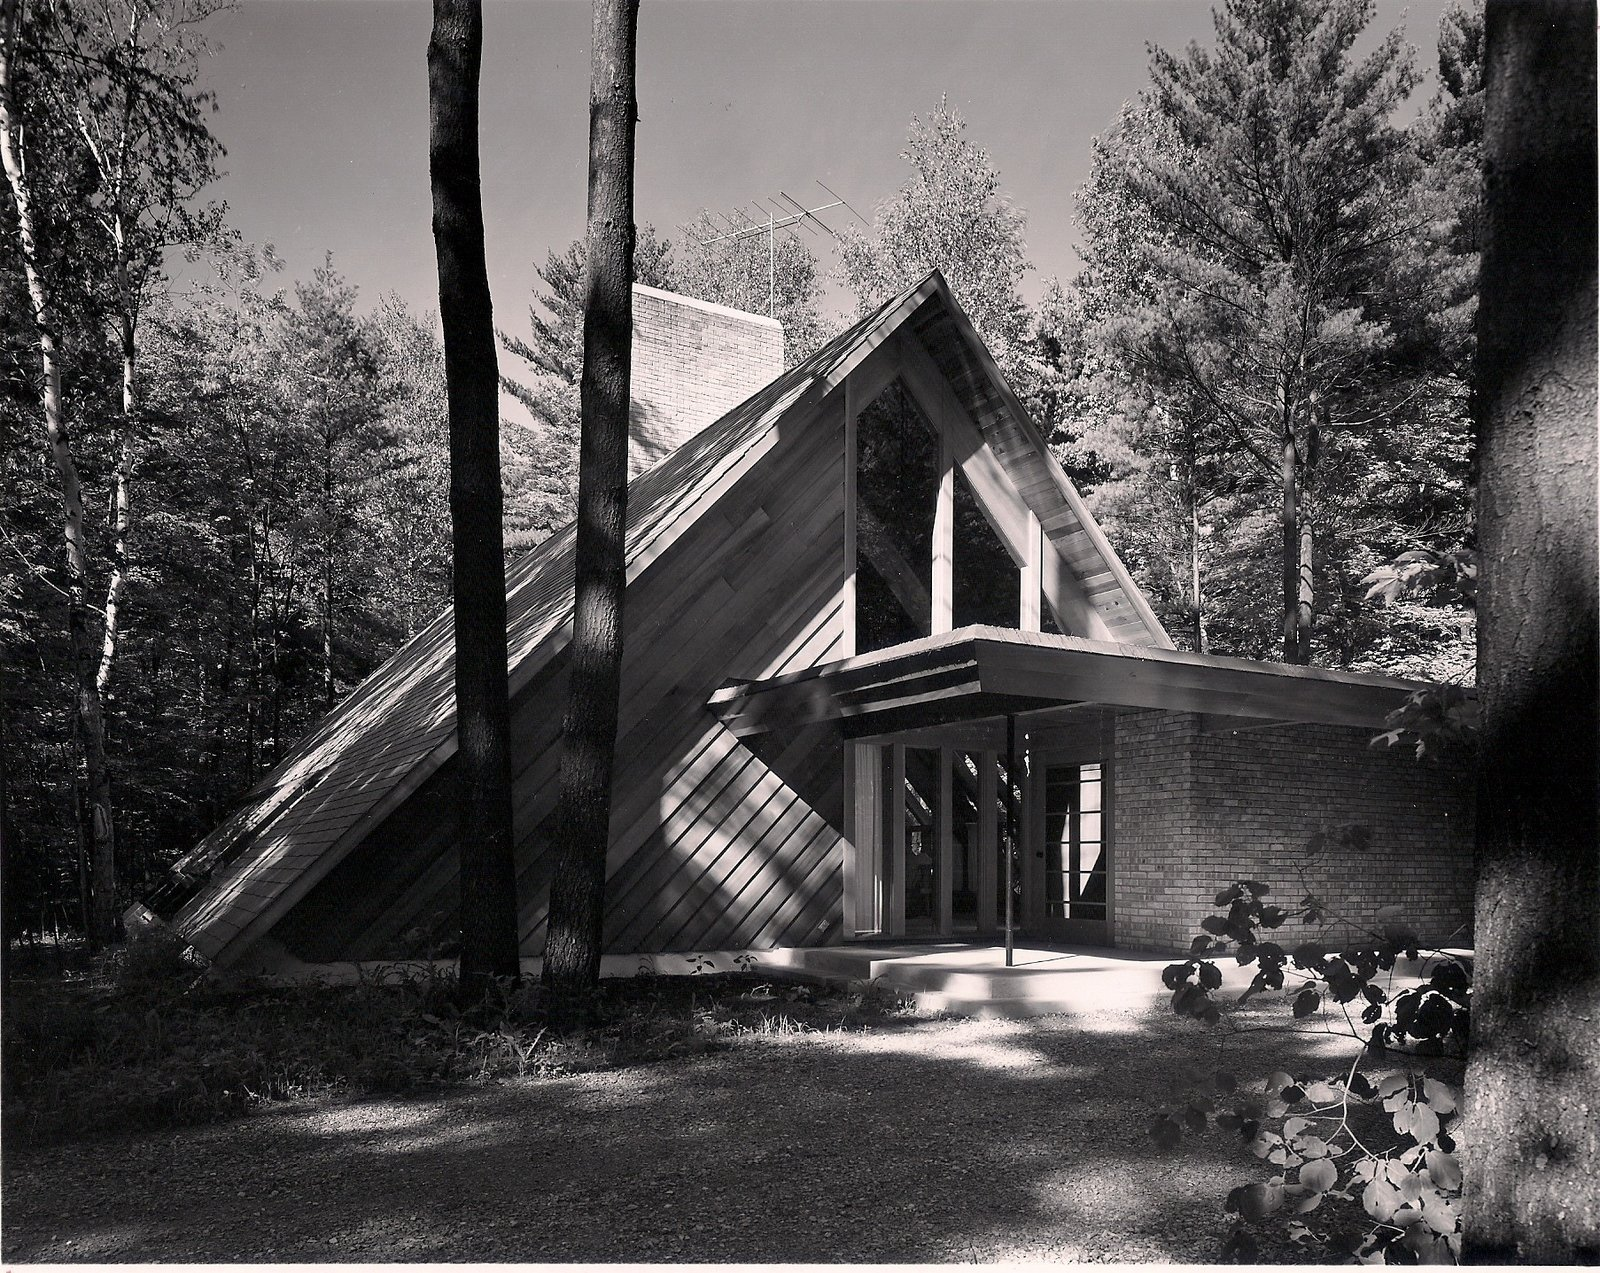 The Josephine Ashmun Residence by Alden B. Dow Tagged: Outdoor, Trees, Front Yard, Rooftop, Grass, Shrubs, Small Patio, Porch, Deck, Wood Patio, Porch, Deck, and Hanging Lighting.  The Josephine Ashmun Residence by Alden B. Dow Home and Studio -  Mid-Century Modern